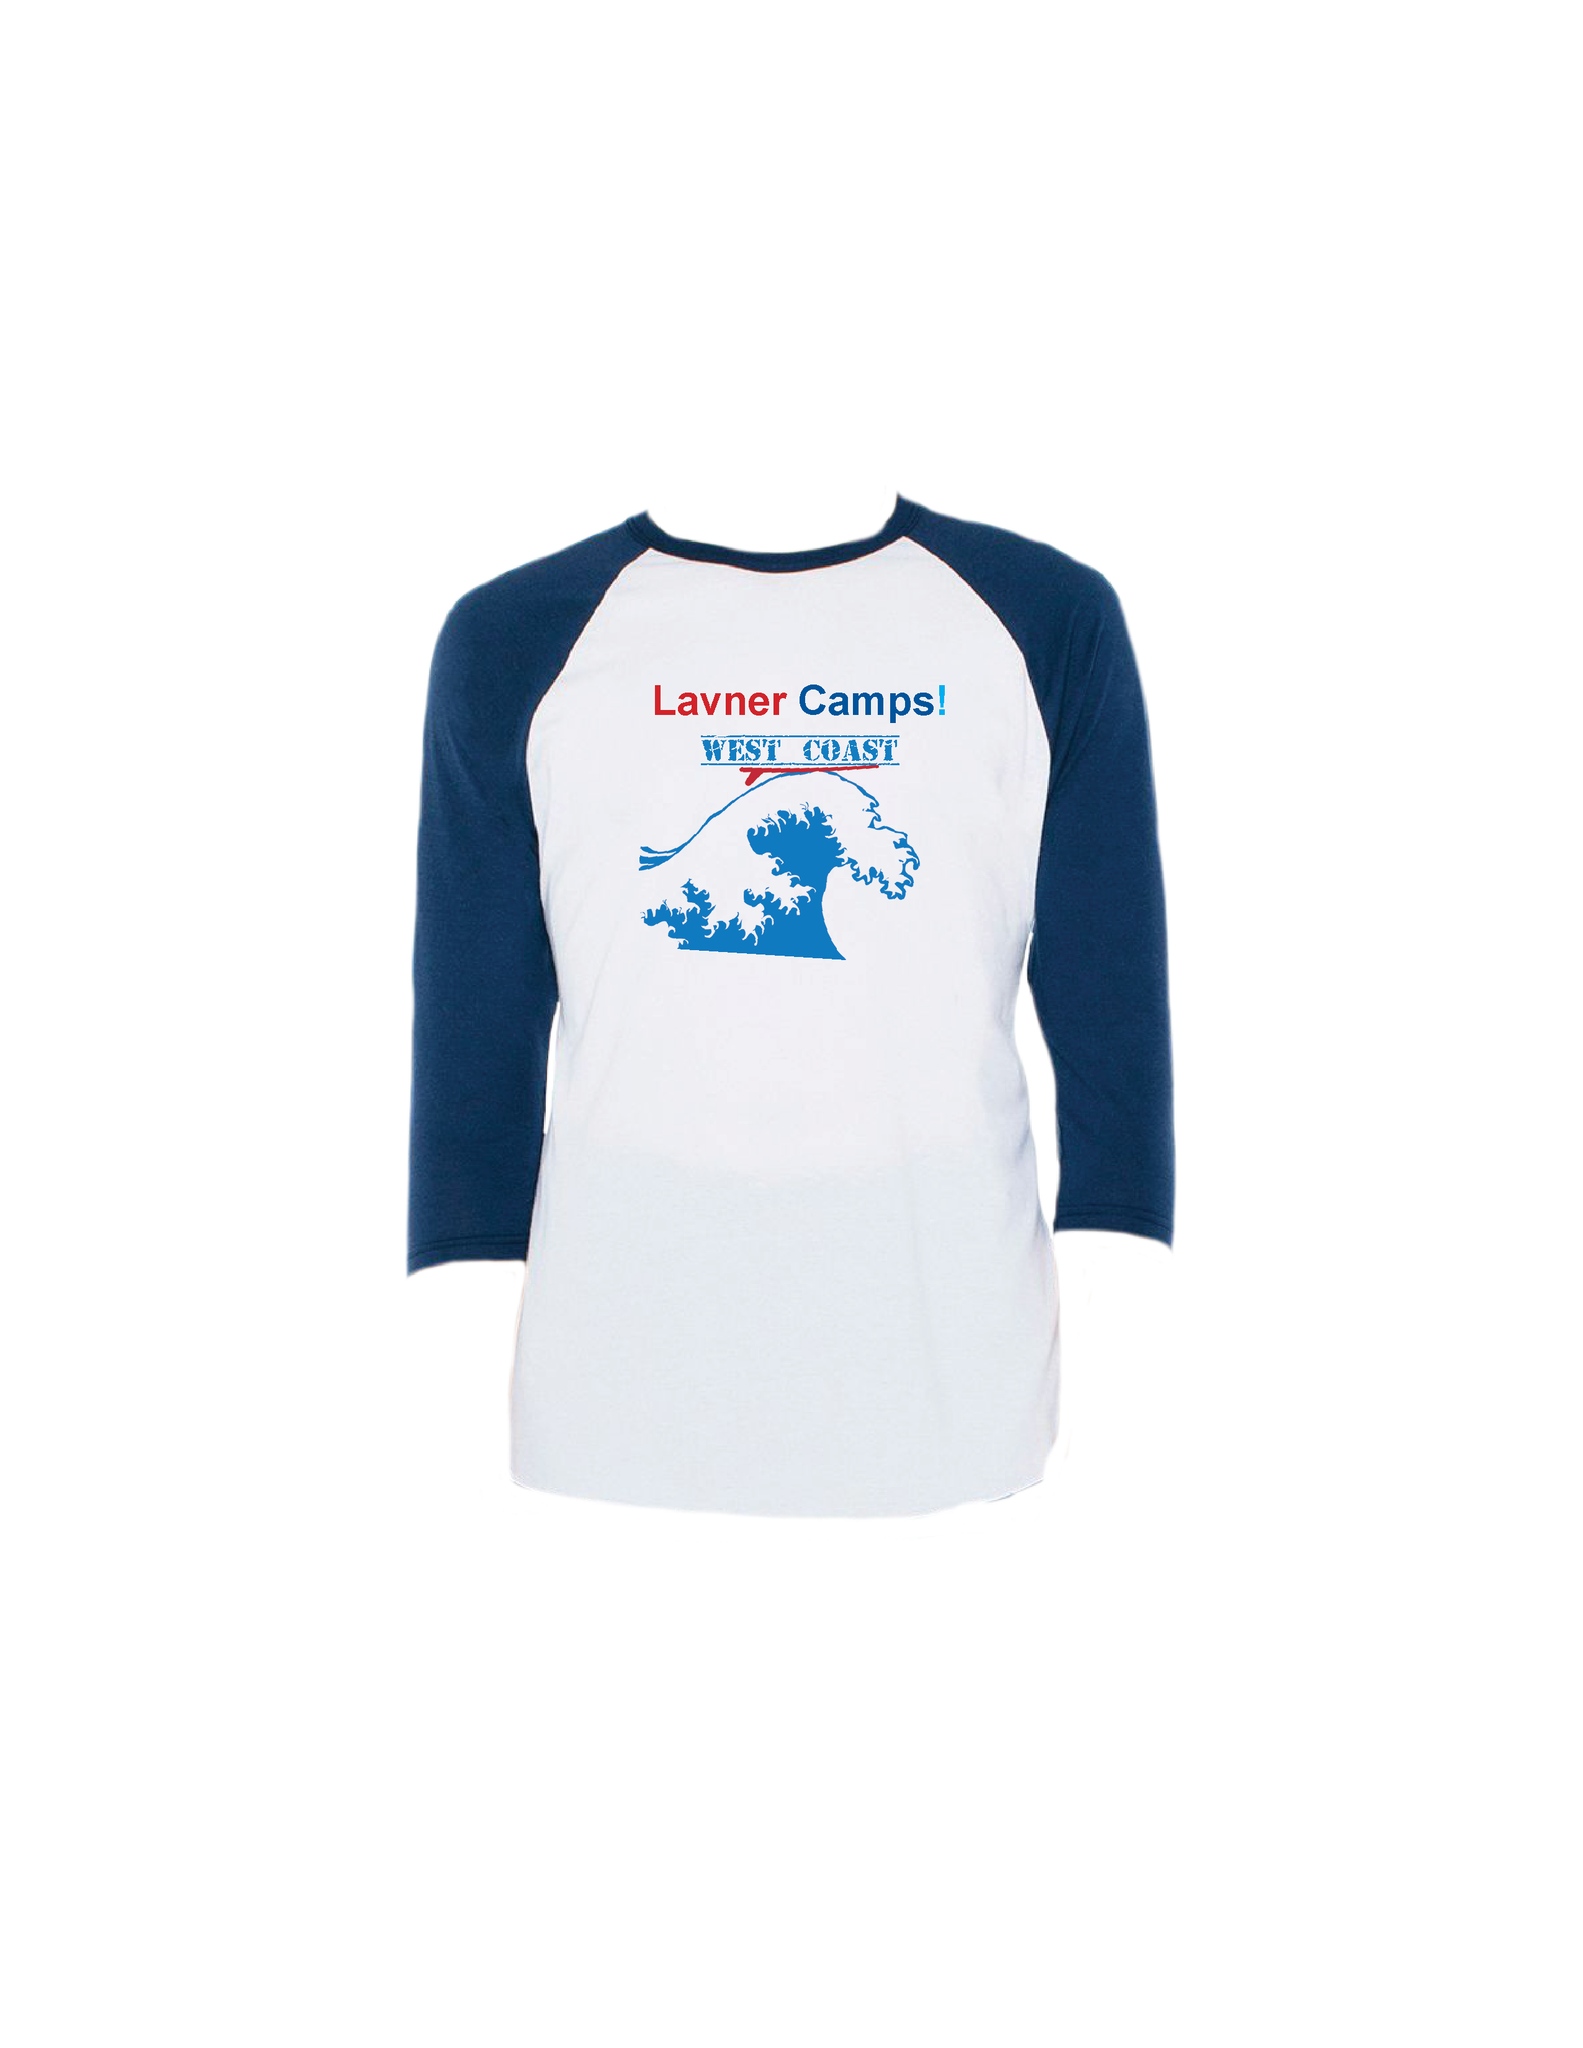 West Coast Raglan 3/4 (Adult)